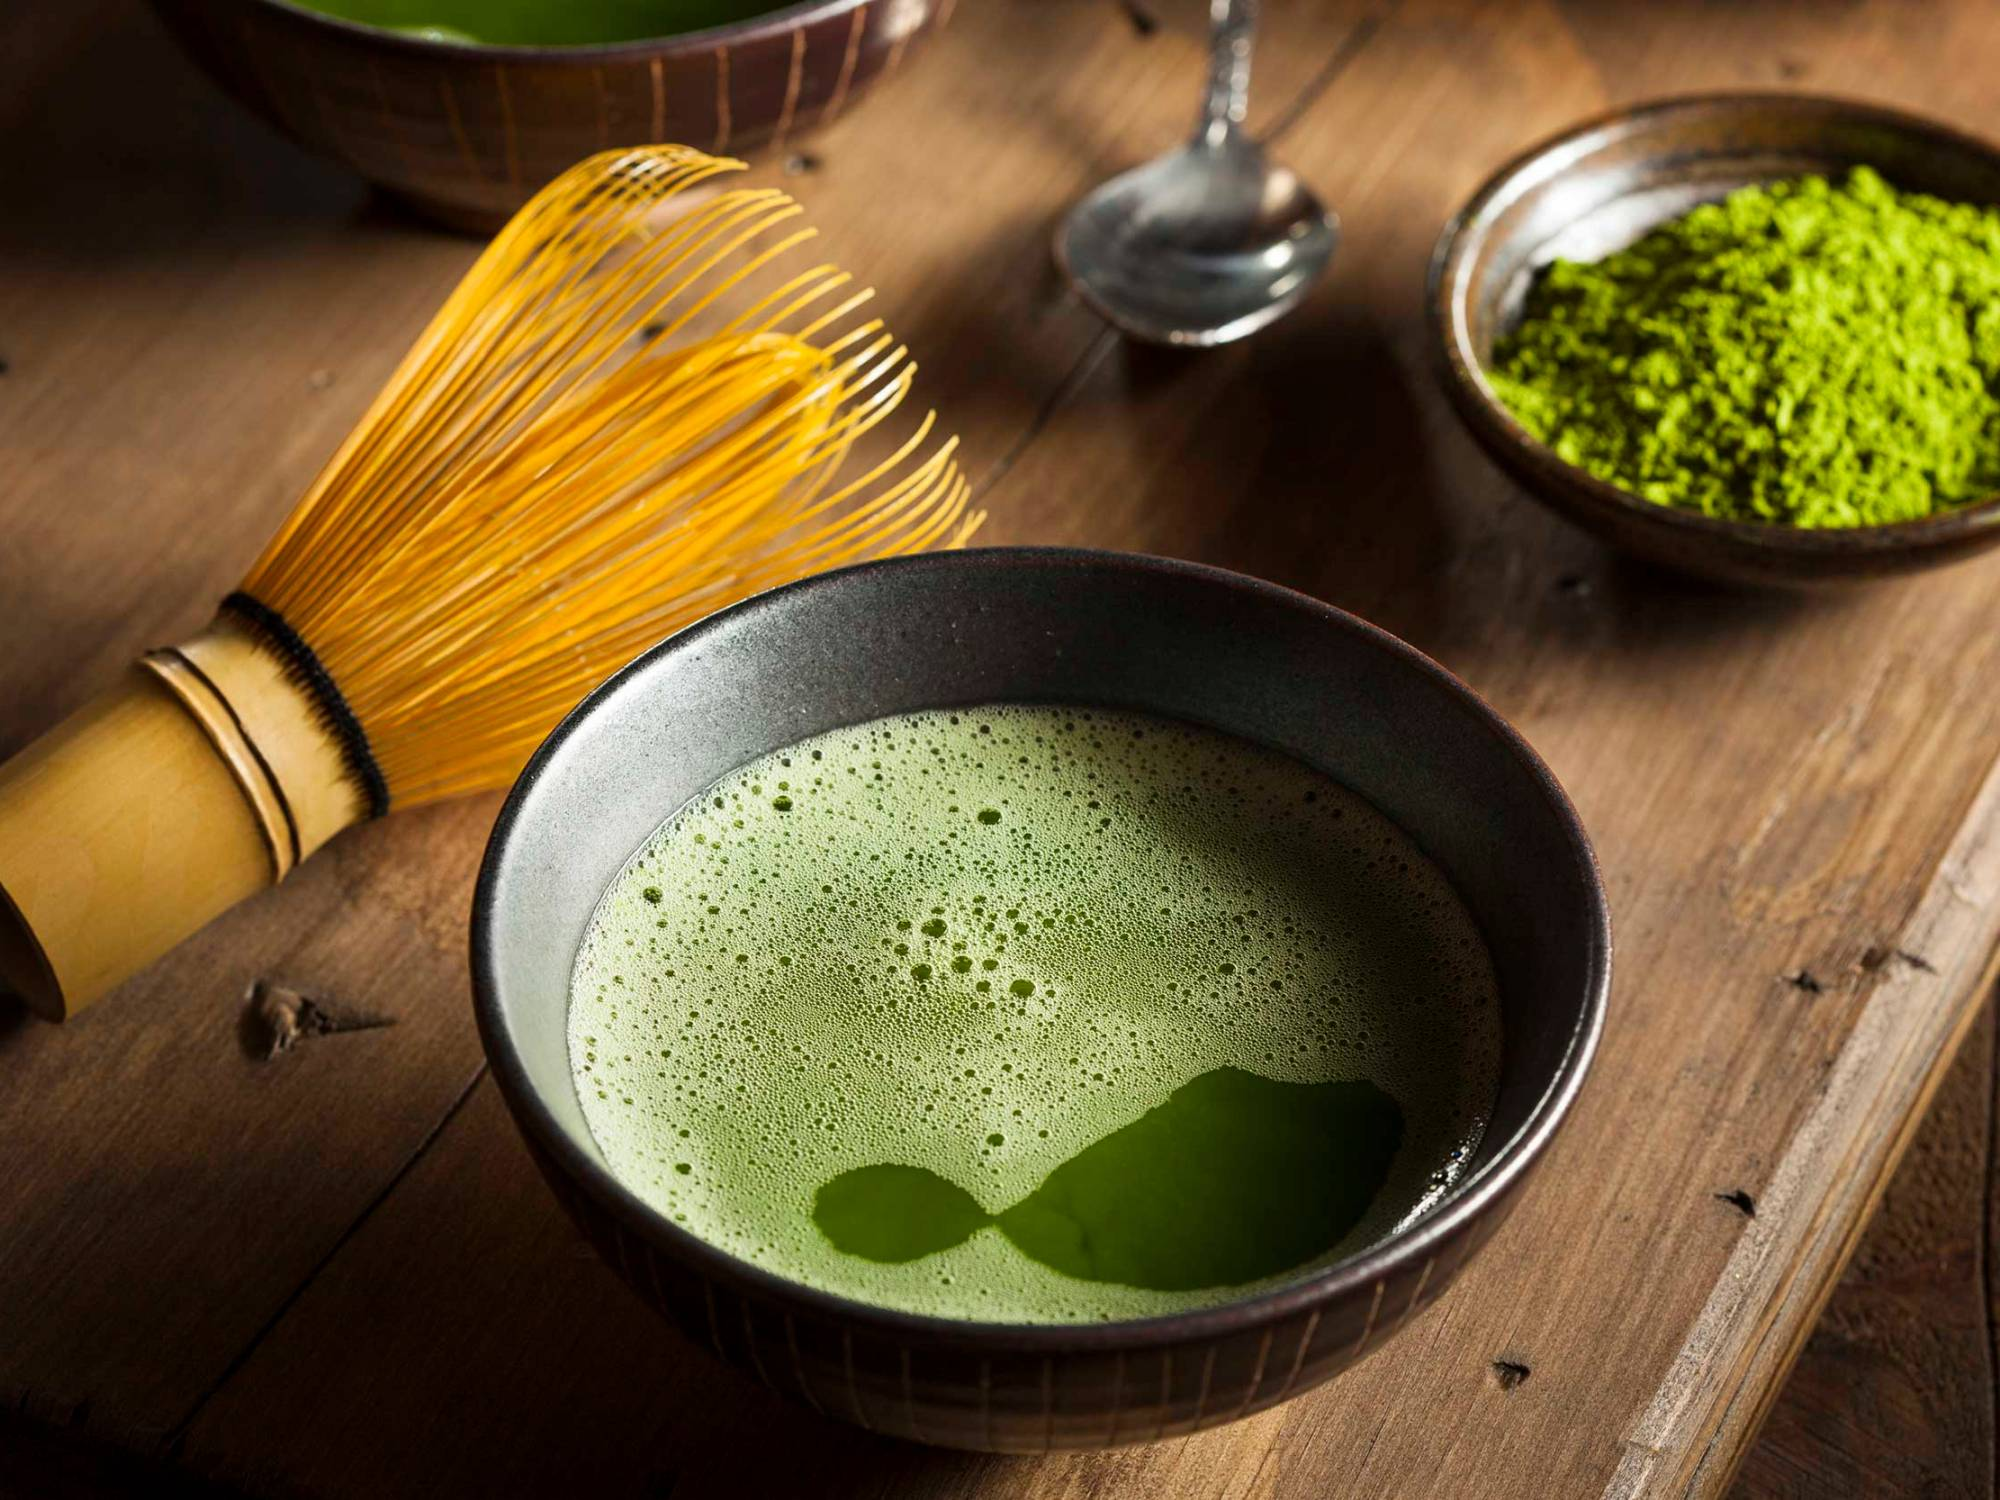 5 raisons de consommer du th matcha 1 recette cr me matcha blog nutrition sant. Black Bedroom Furniture Sets. Home Design Ideas